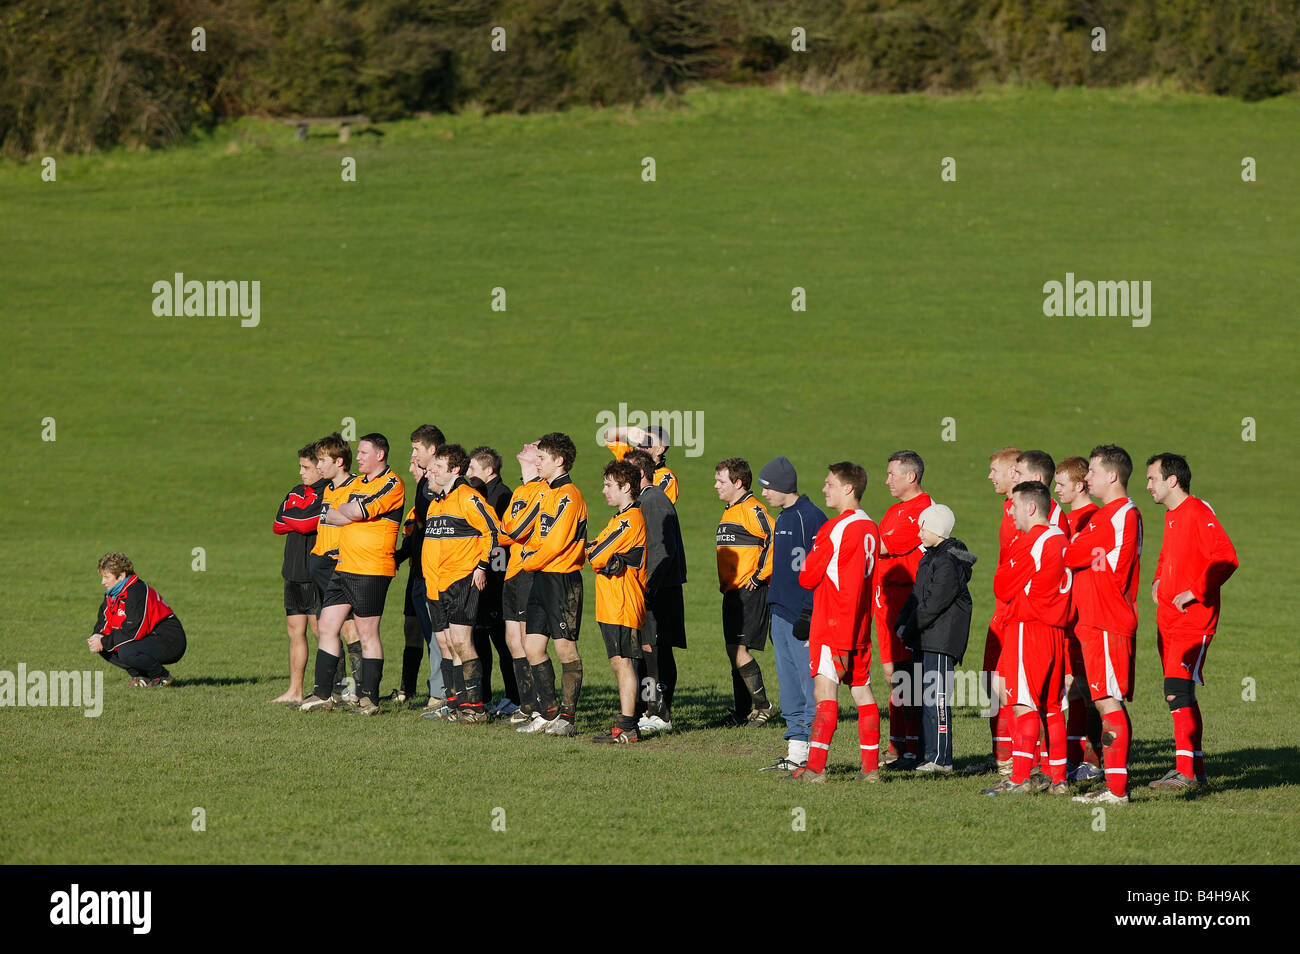 Two Sunday league football teams watch a penalty shoot out. - Stock Image